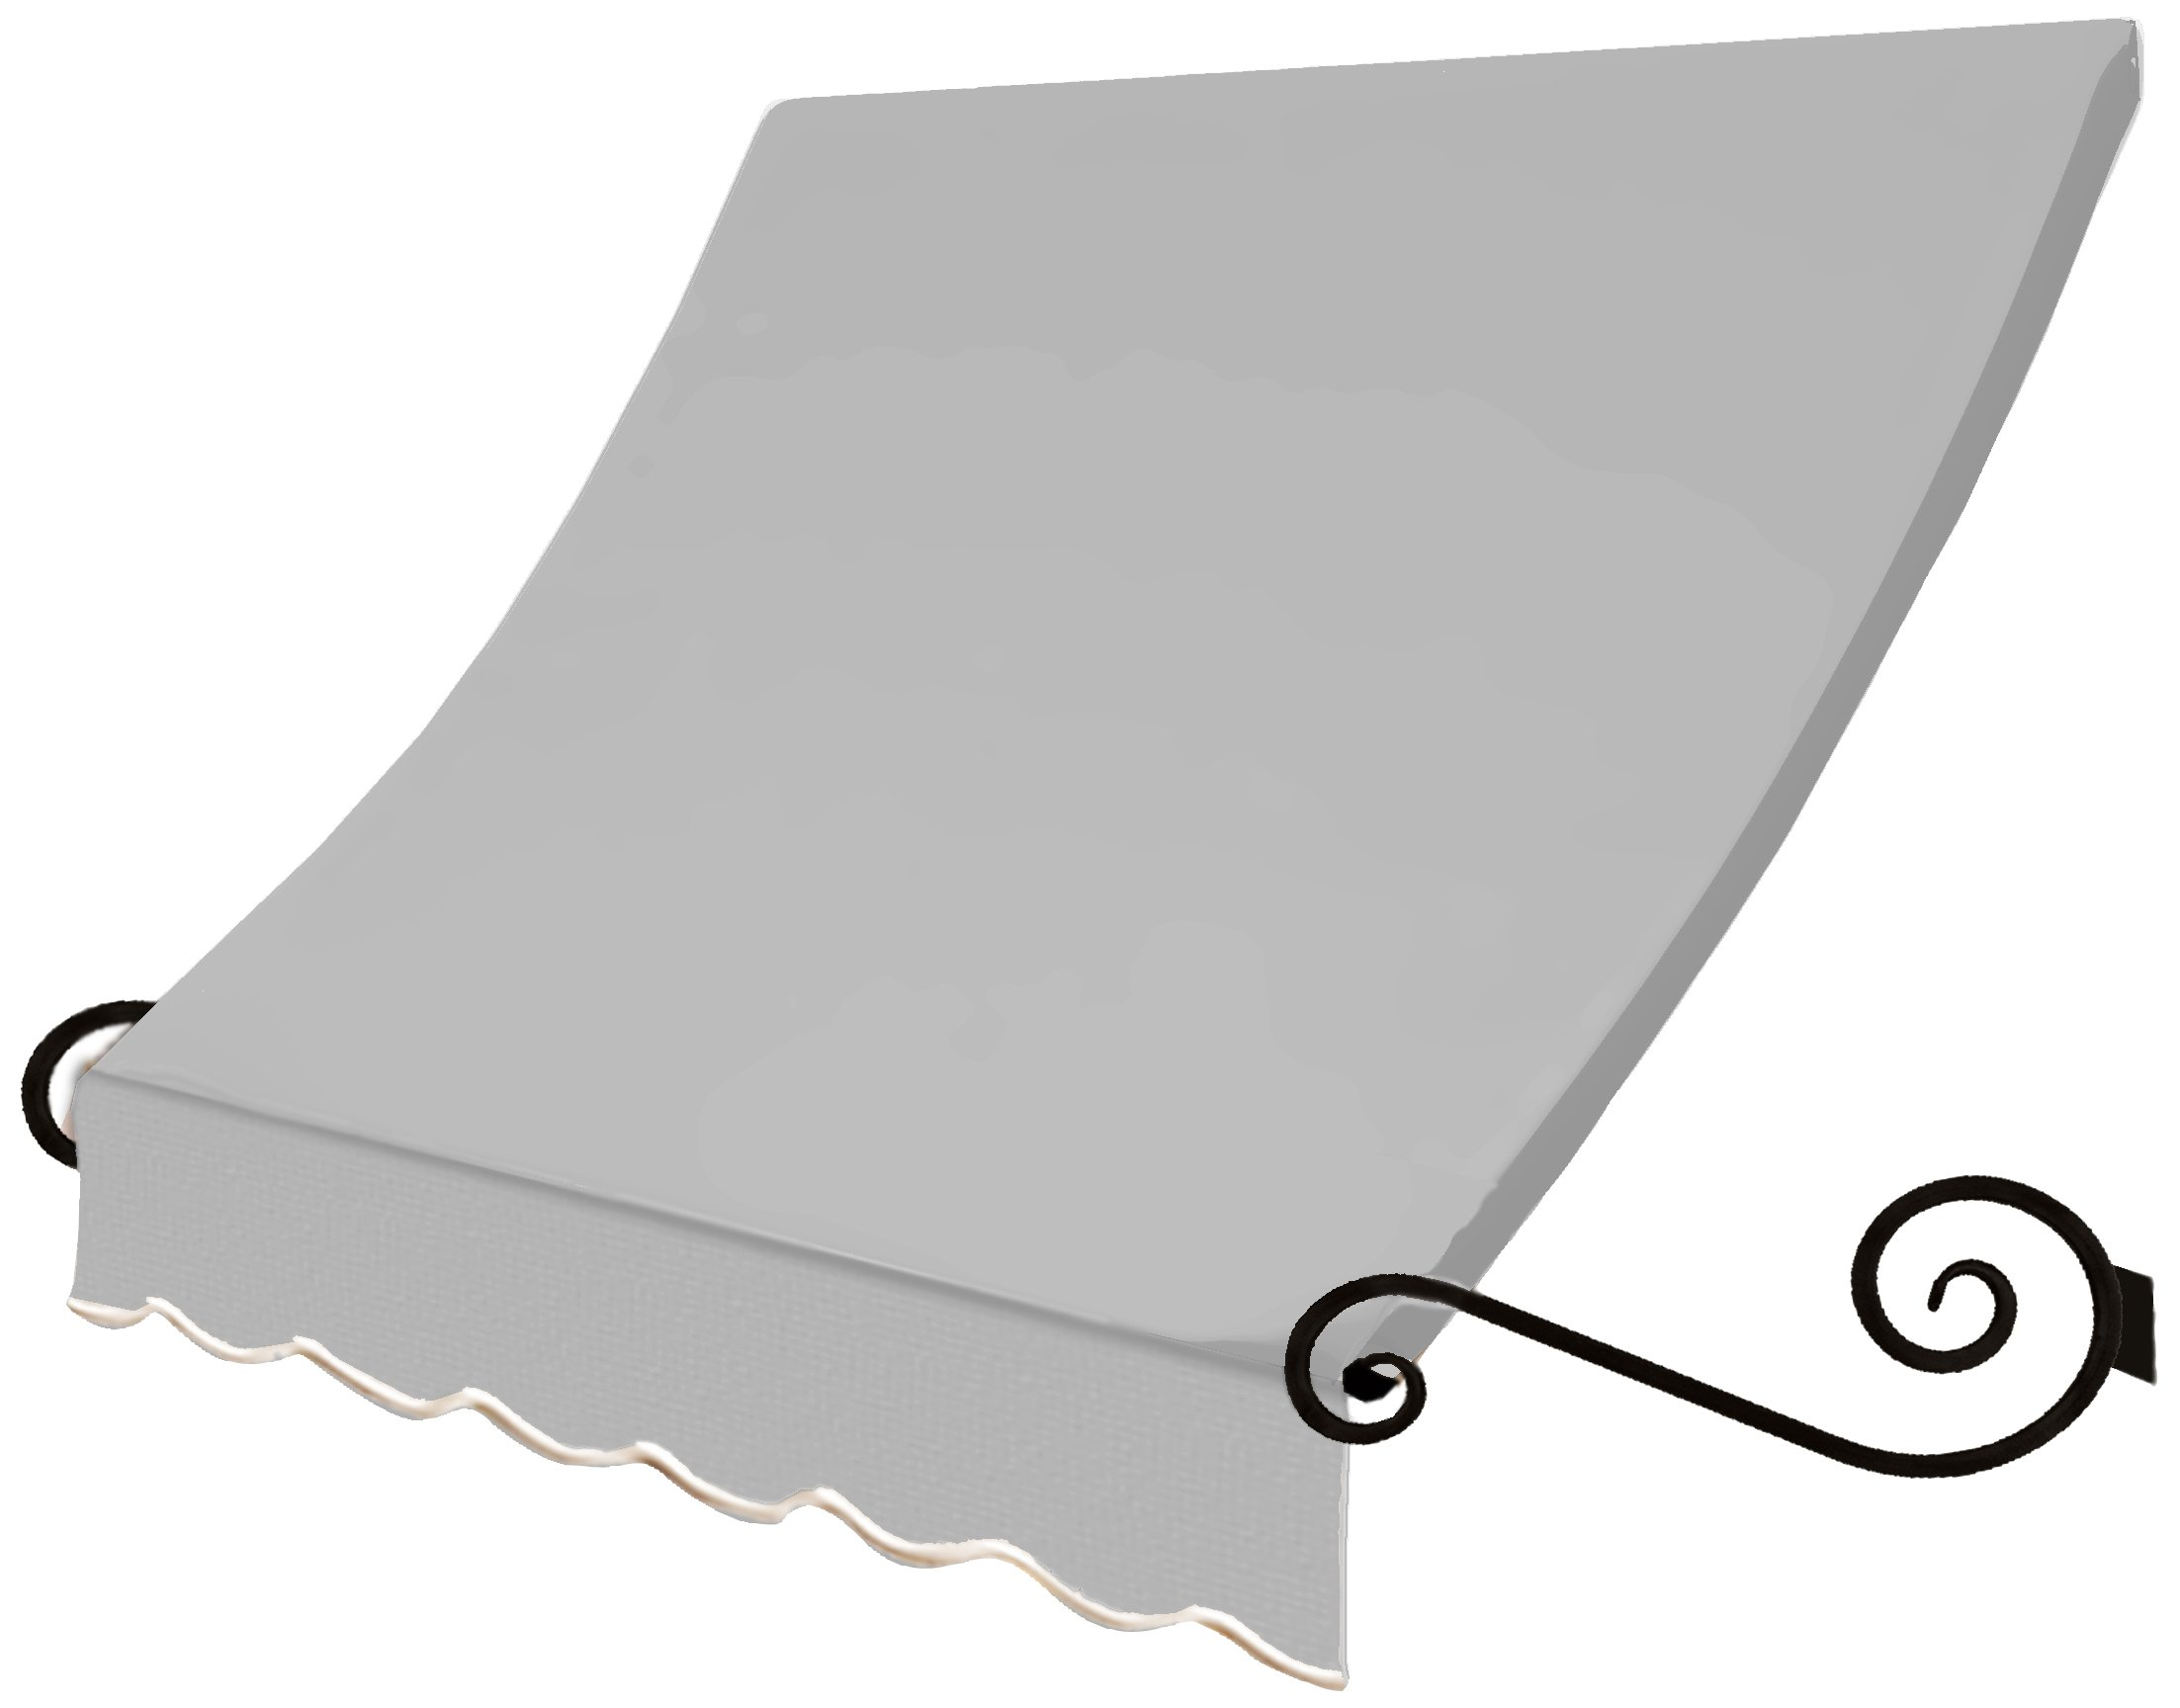 Awntech 3-Feet Charleston Window/Entry Awning, 24 by 12-Inch, Gray